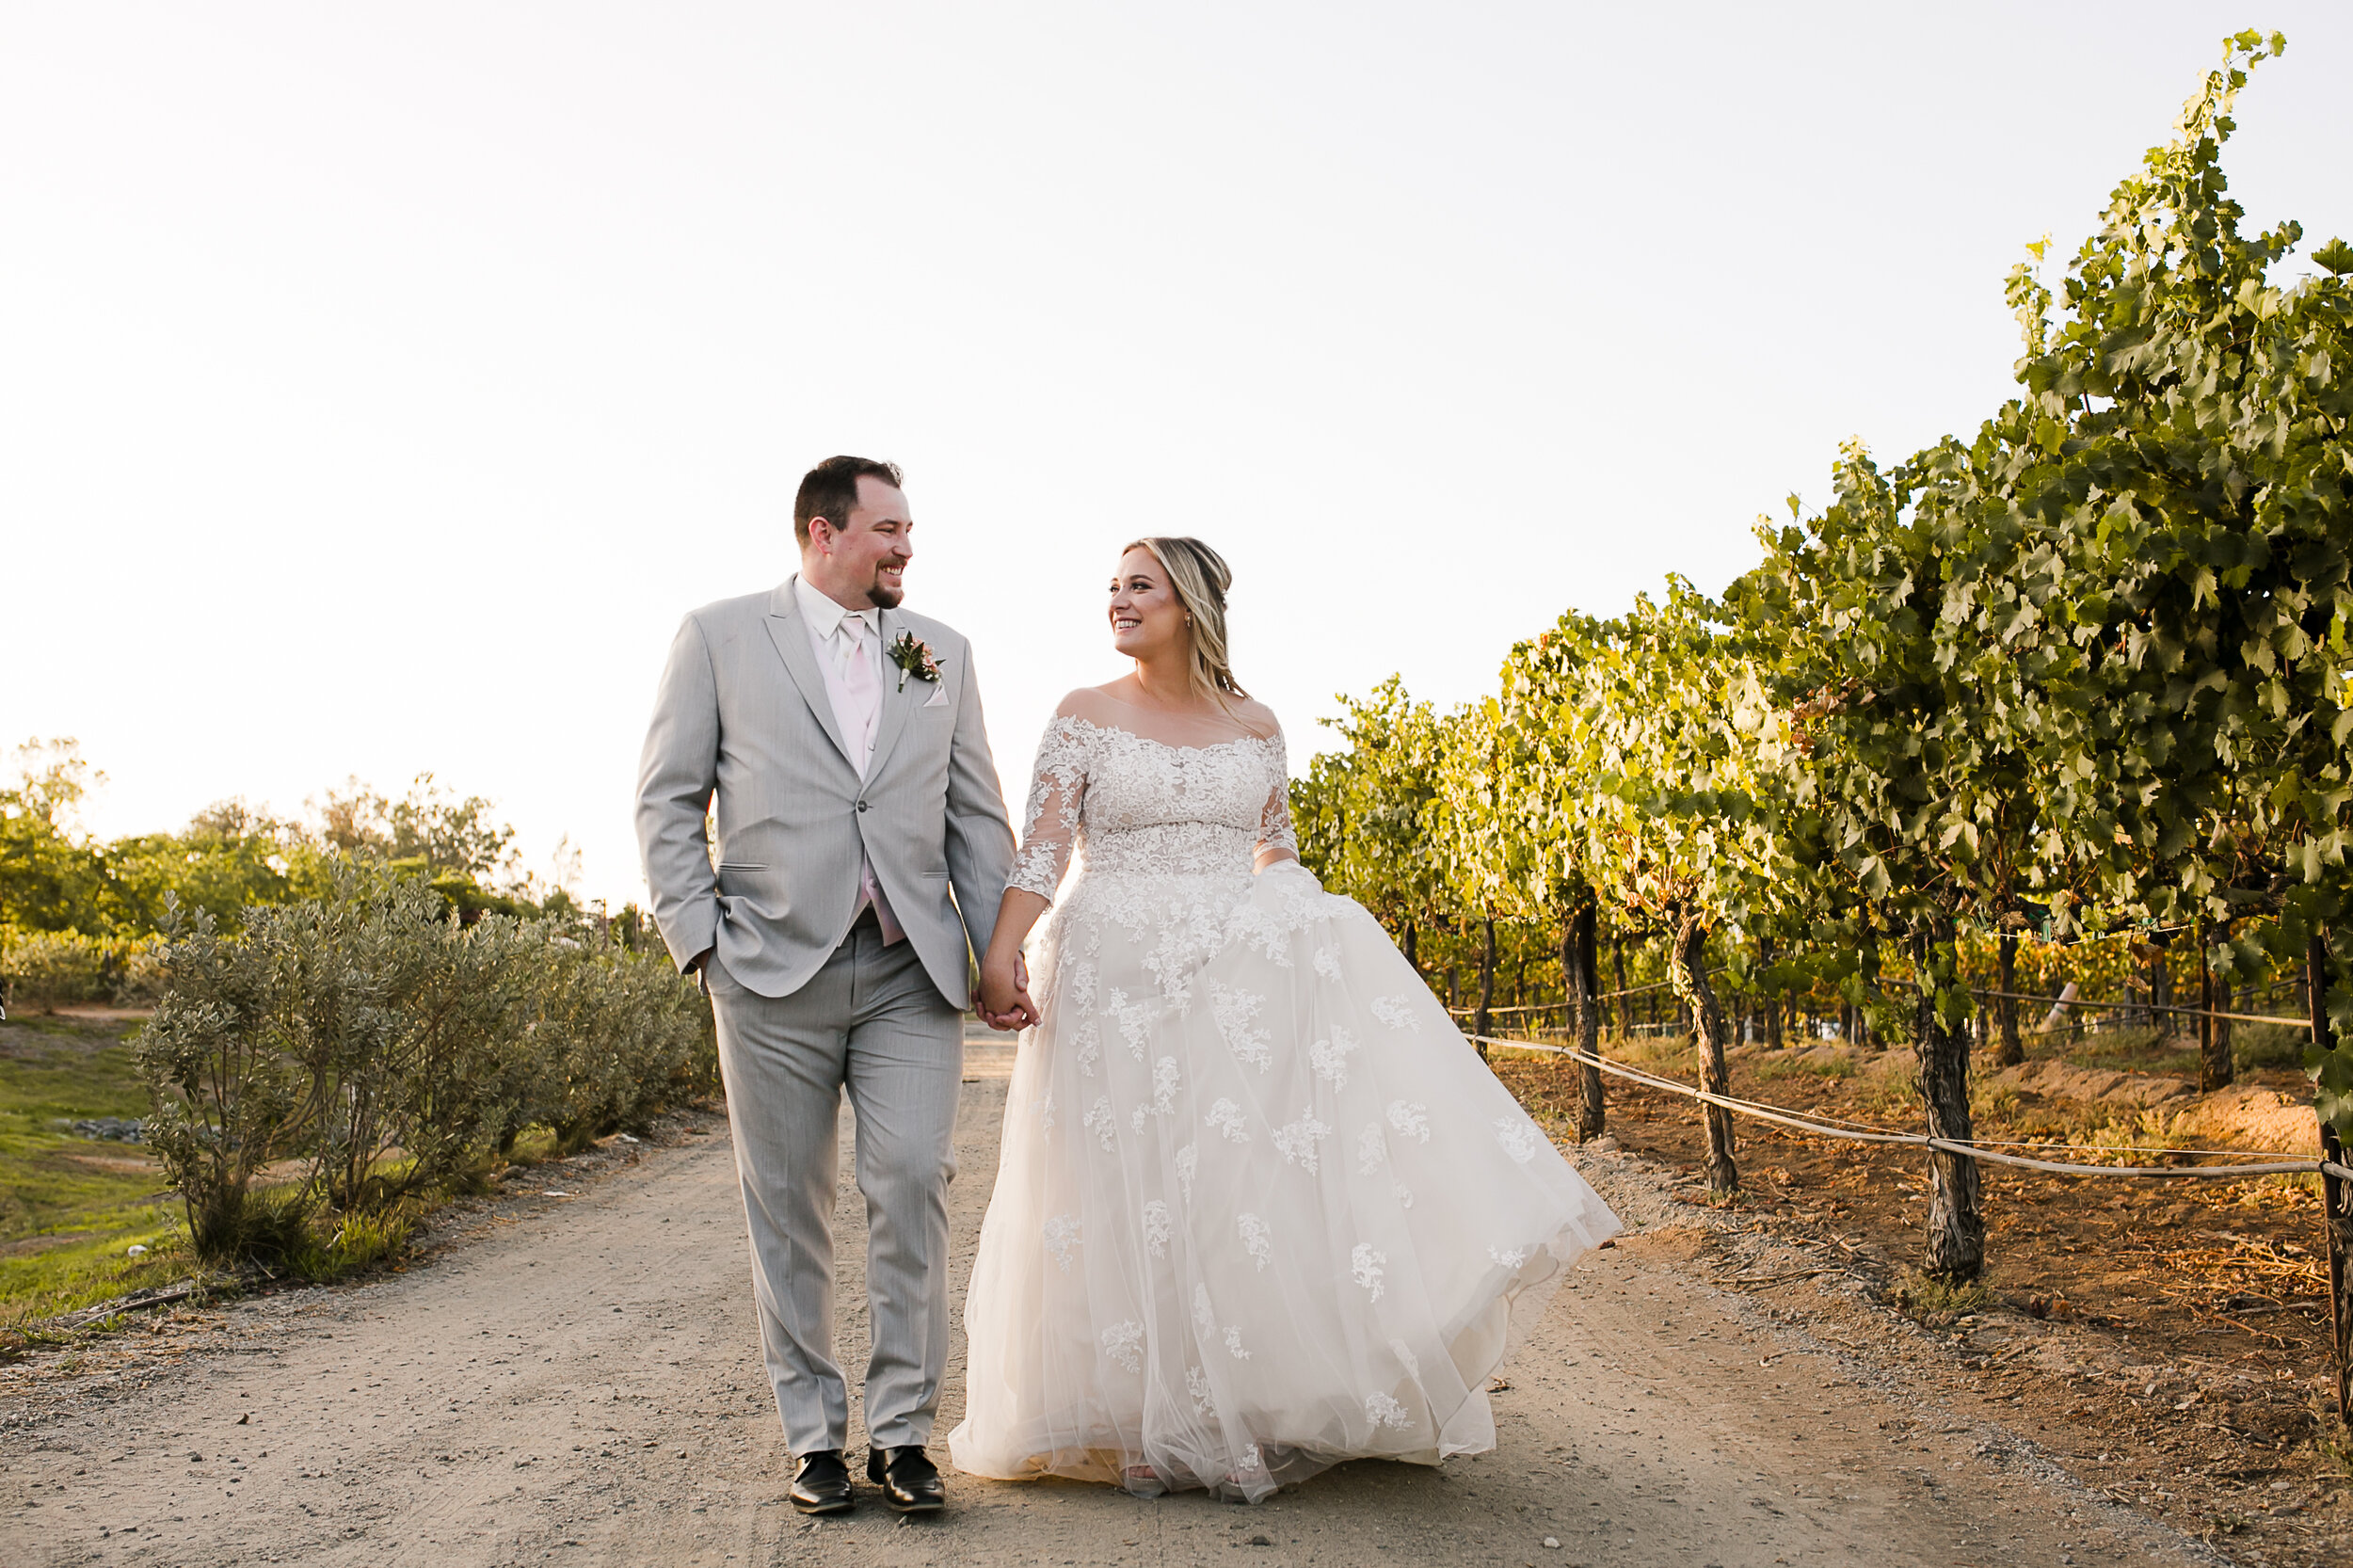 Holly and Trystan's Rustic Fall Wedding at Lorimar Vineyard and Winery in Temecula, CA